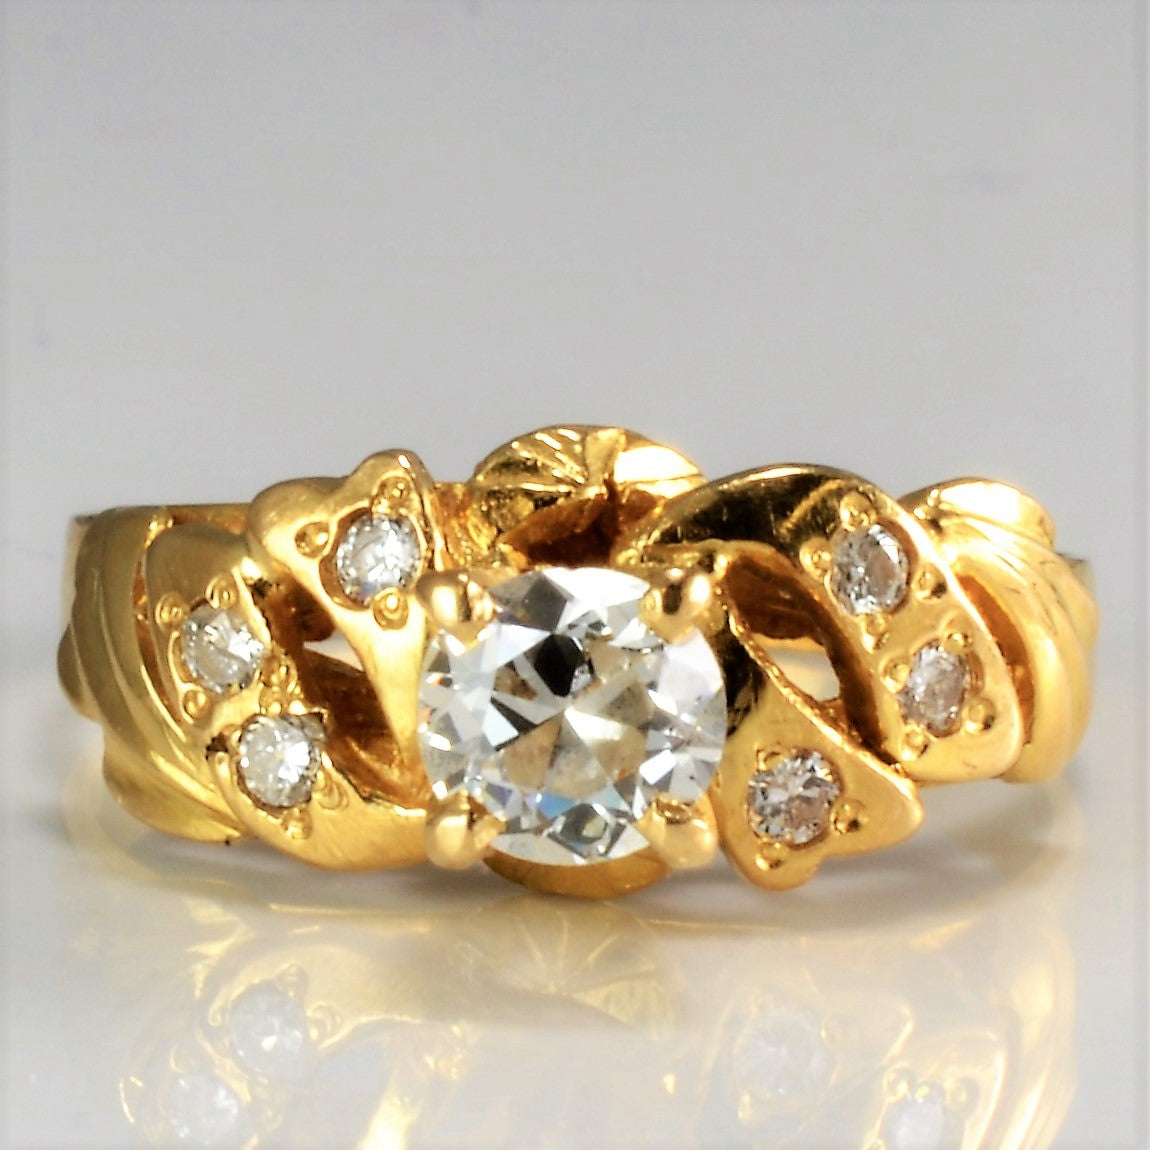 Floral Inspired High Set Diamond Engagement Ring | 0.40 ctw, SZ 5.25 |